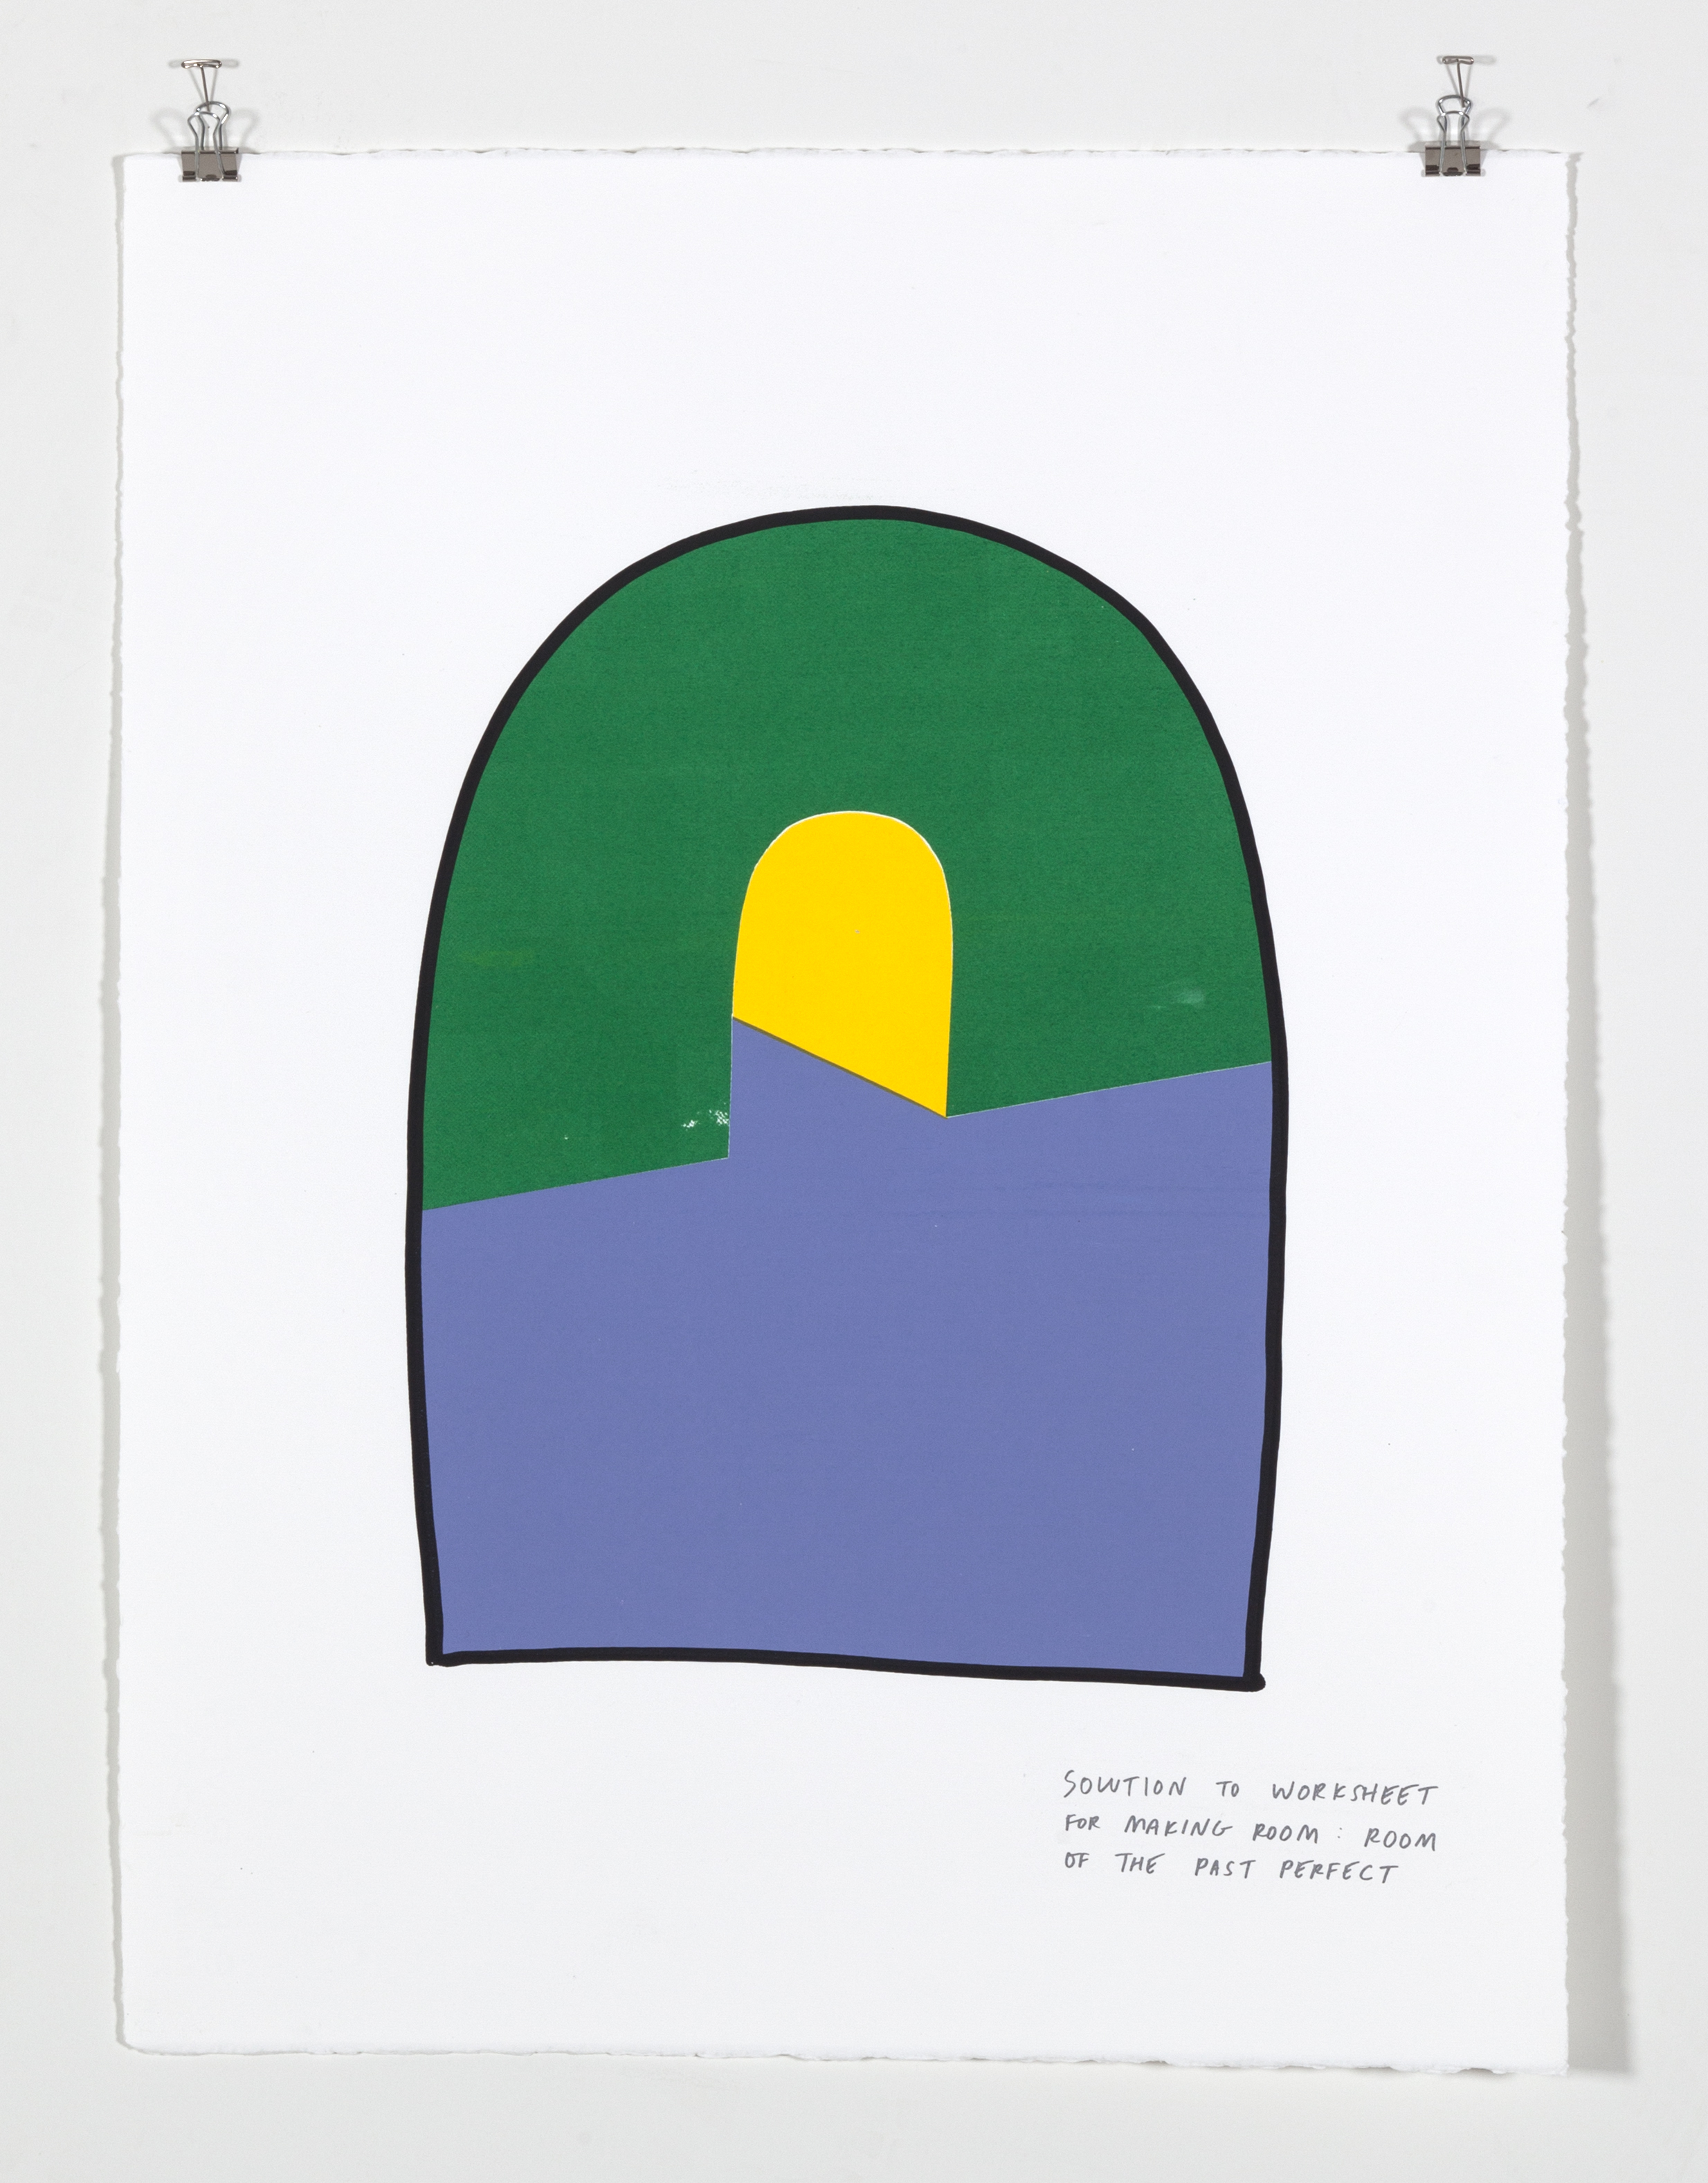 Solution to Worksheet for Making Room: Room of the Past Perfect,  2018  Five color silkscreen print on paper 19 7/8 x 25 7/8 inches